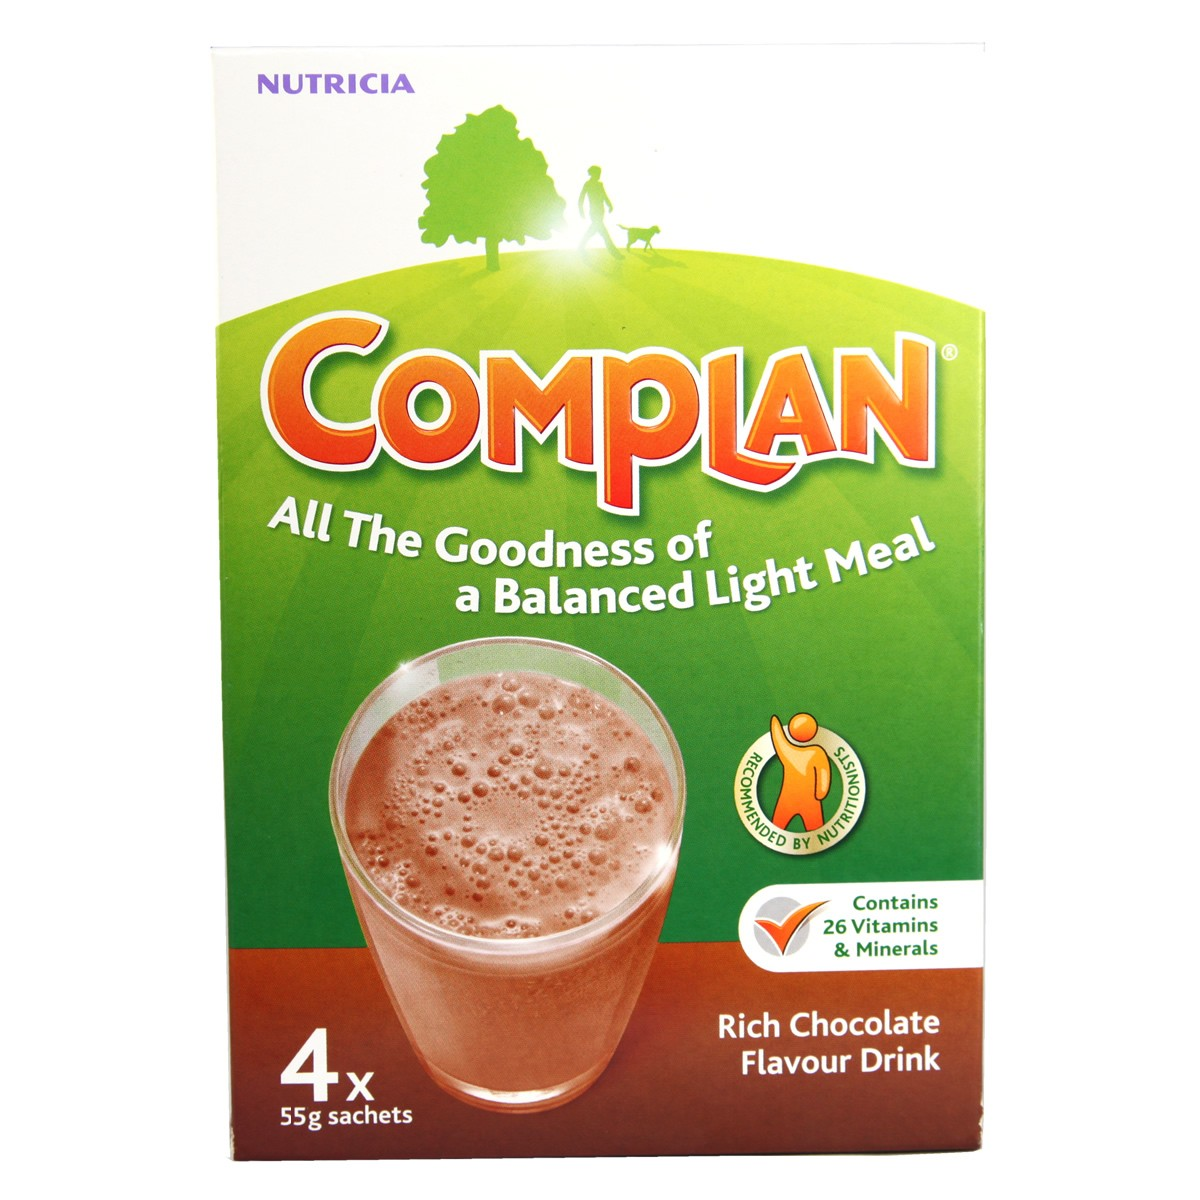 Complan Nutricia Rich Chocolate Flavour Drink